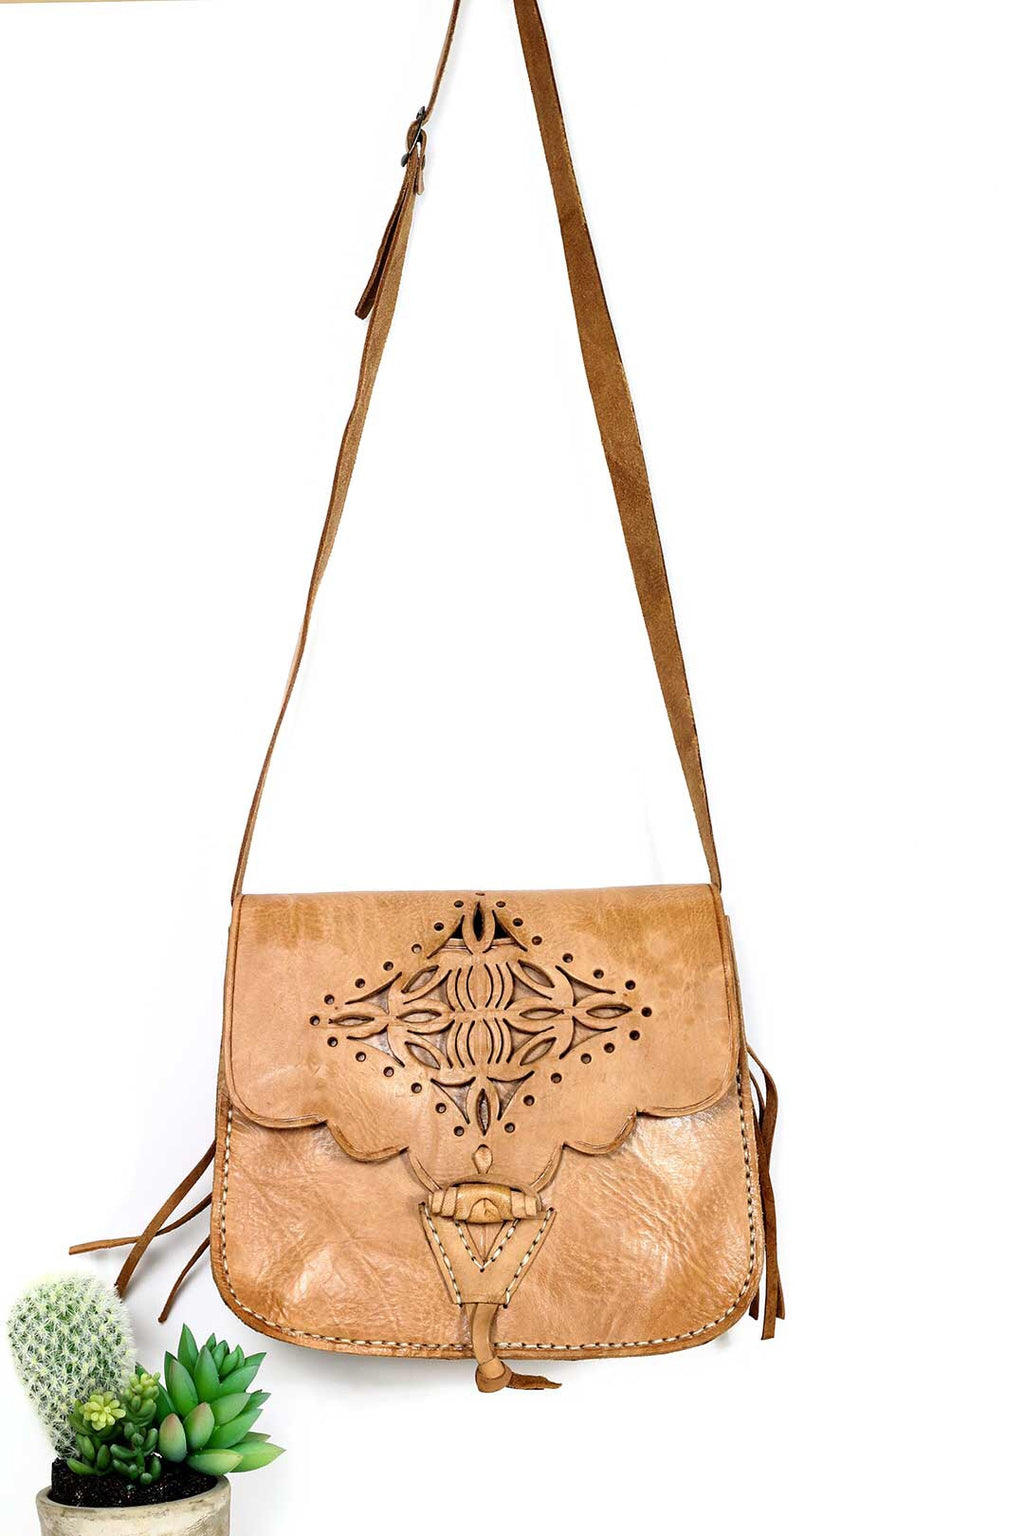 TAGHAZOUT TOOLED LEATHER CROSSBODY BAG